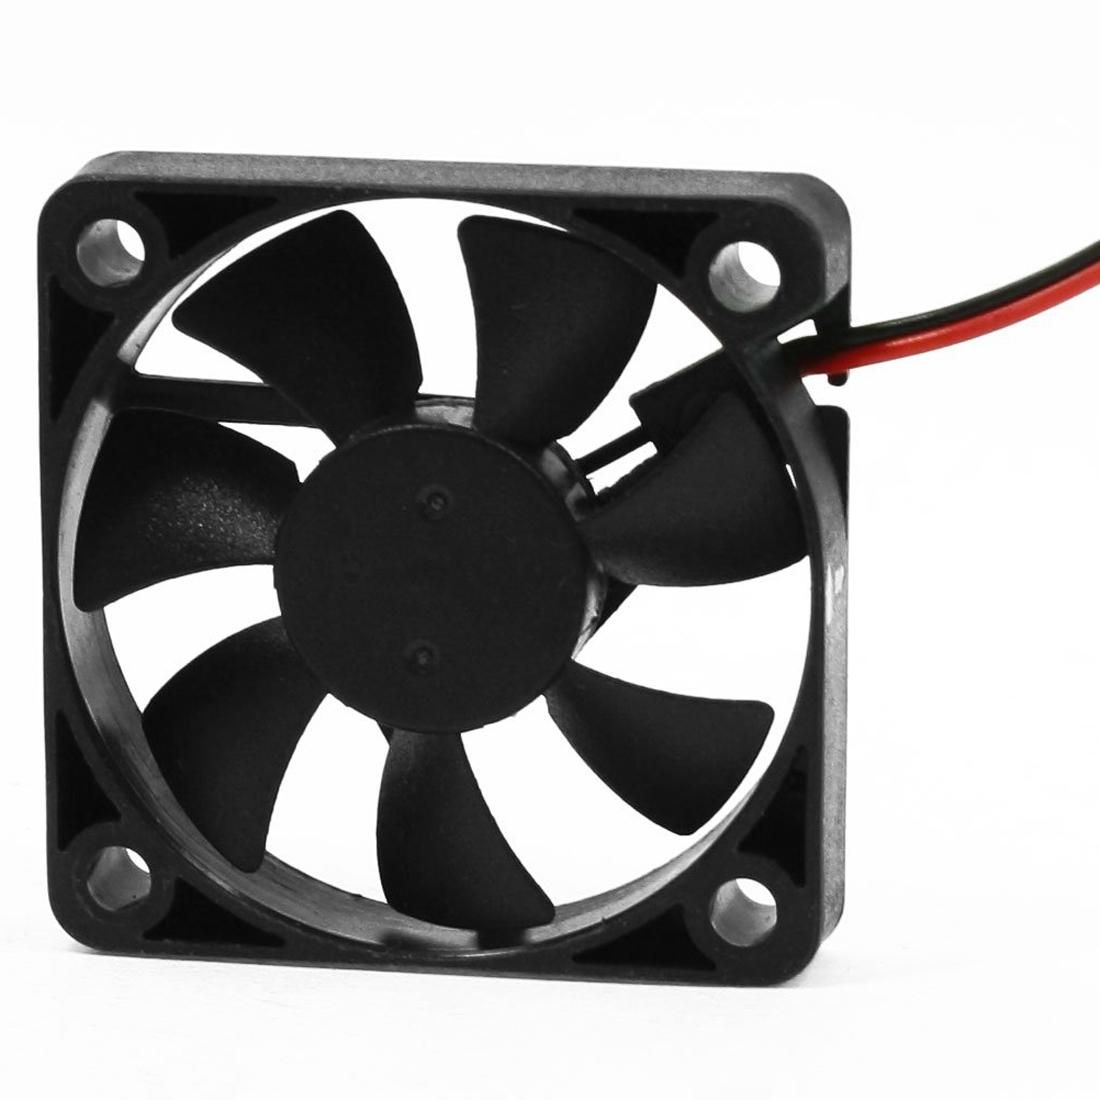 DC 12V 0.1A 2 Pin PC Case CPU Cooler Cooling Fan 40mm x 40mm x 10mm AD